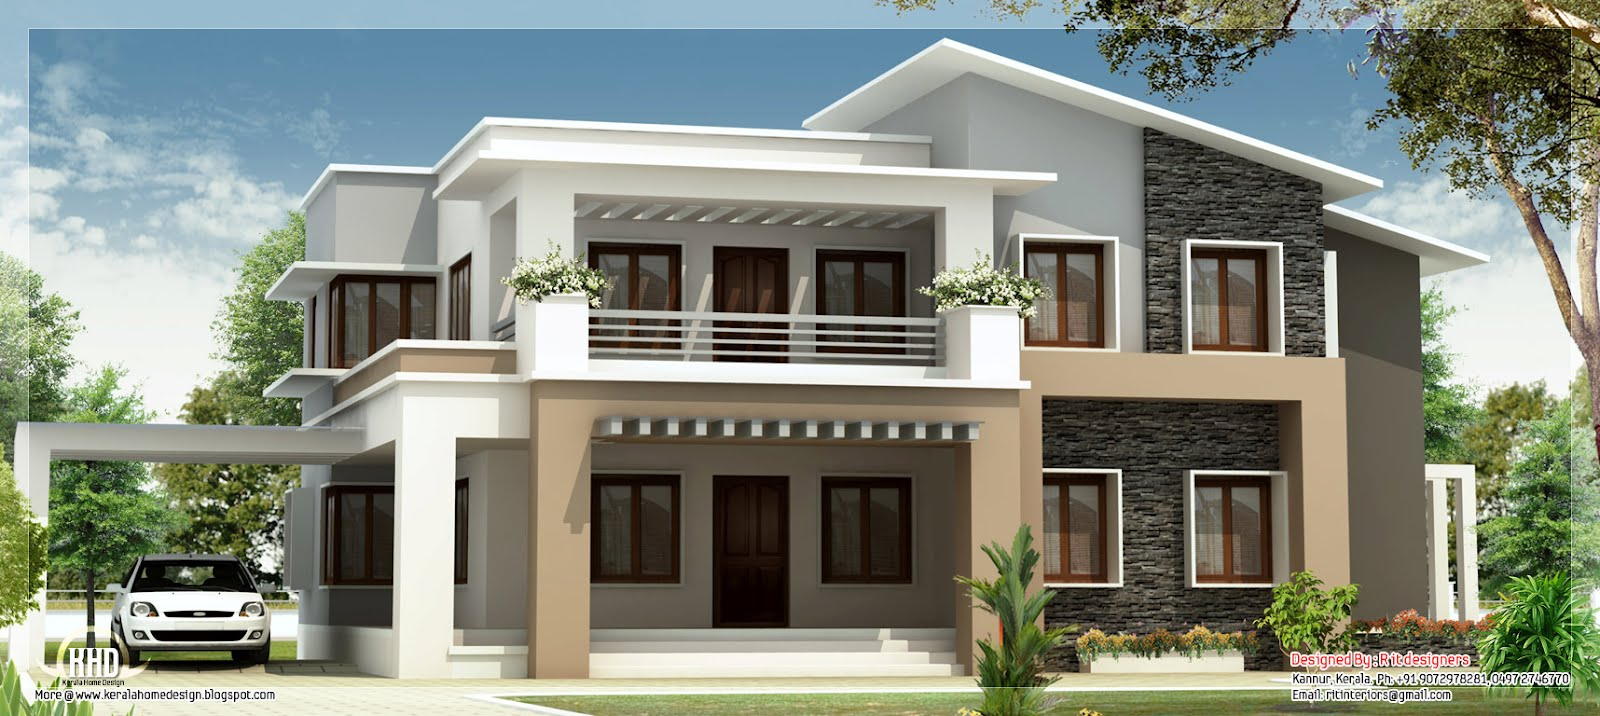 house exterior design india with 3d Views Of Residential Bangalows on Celebration Egyptian Architecture Britain 90 Years Discovery Tutankhamuns Tomb besides Ar antonovich Design in addition Bedroom Furniture Pictures India besides Corporate Building Design blogspot furthermore Latest House Elevation Designs 2016.